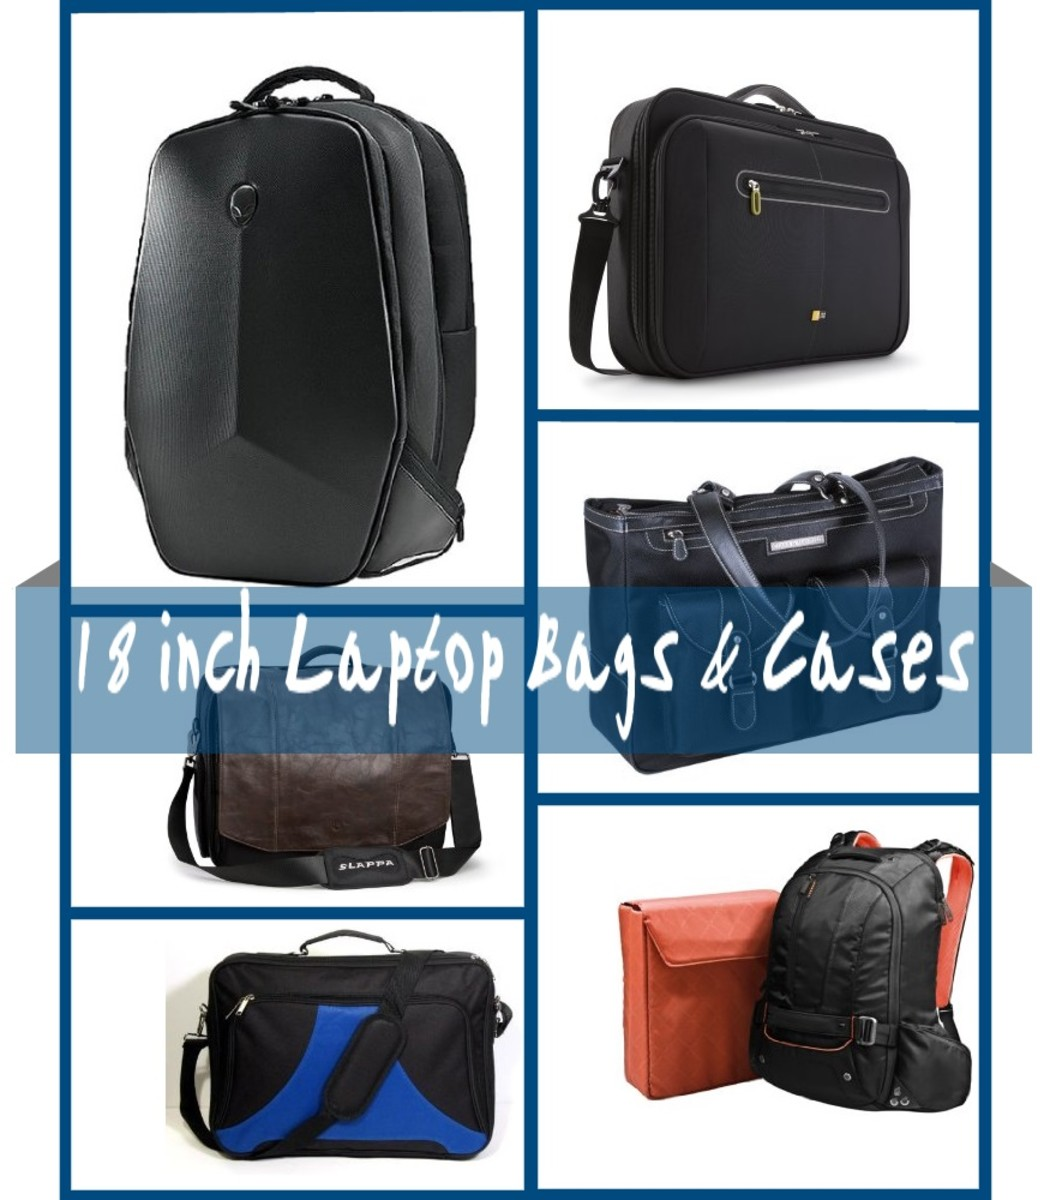 18-inch Laptop Bags and Cases